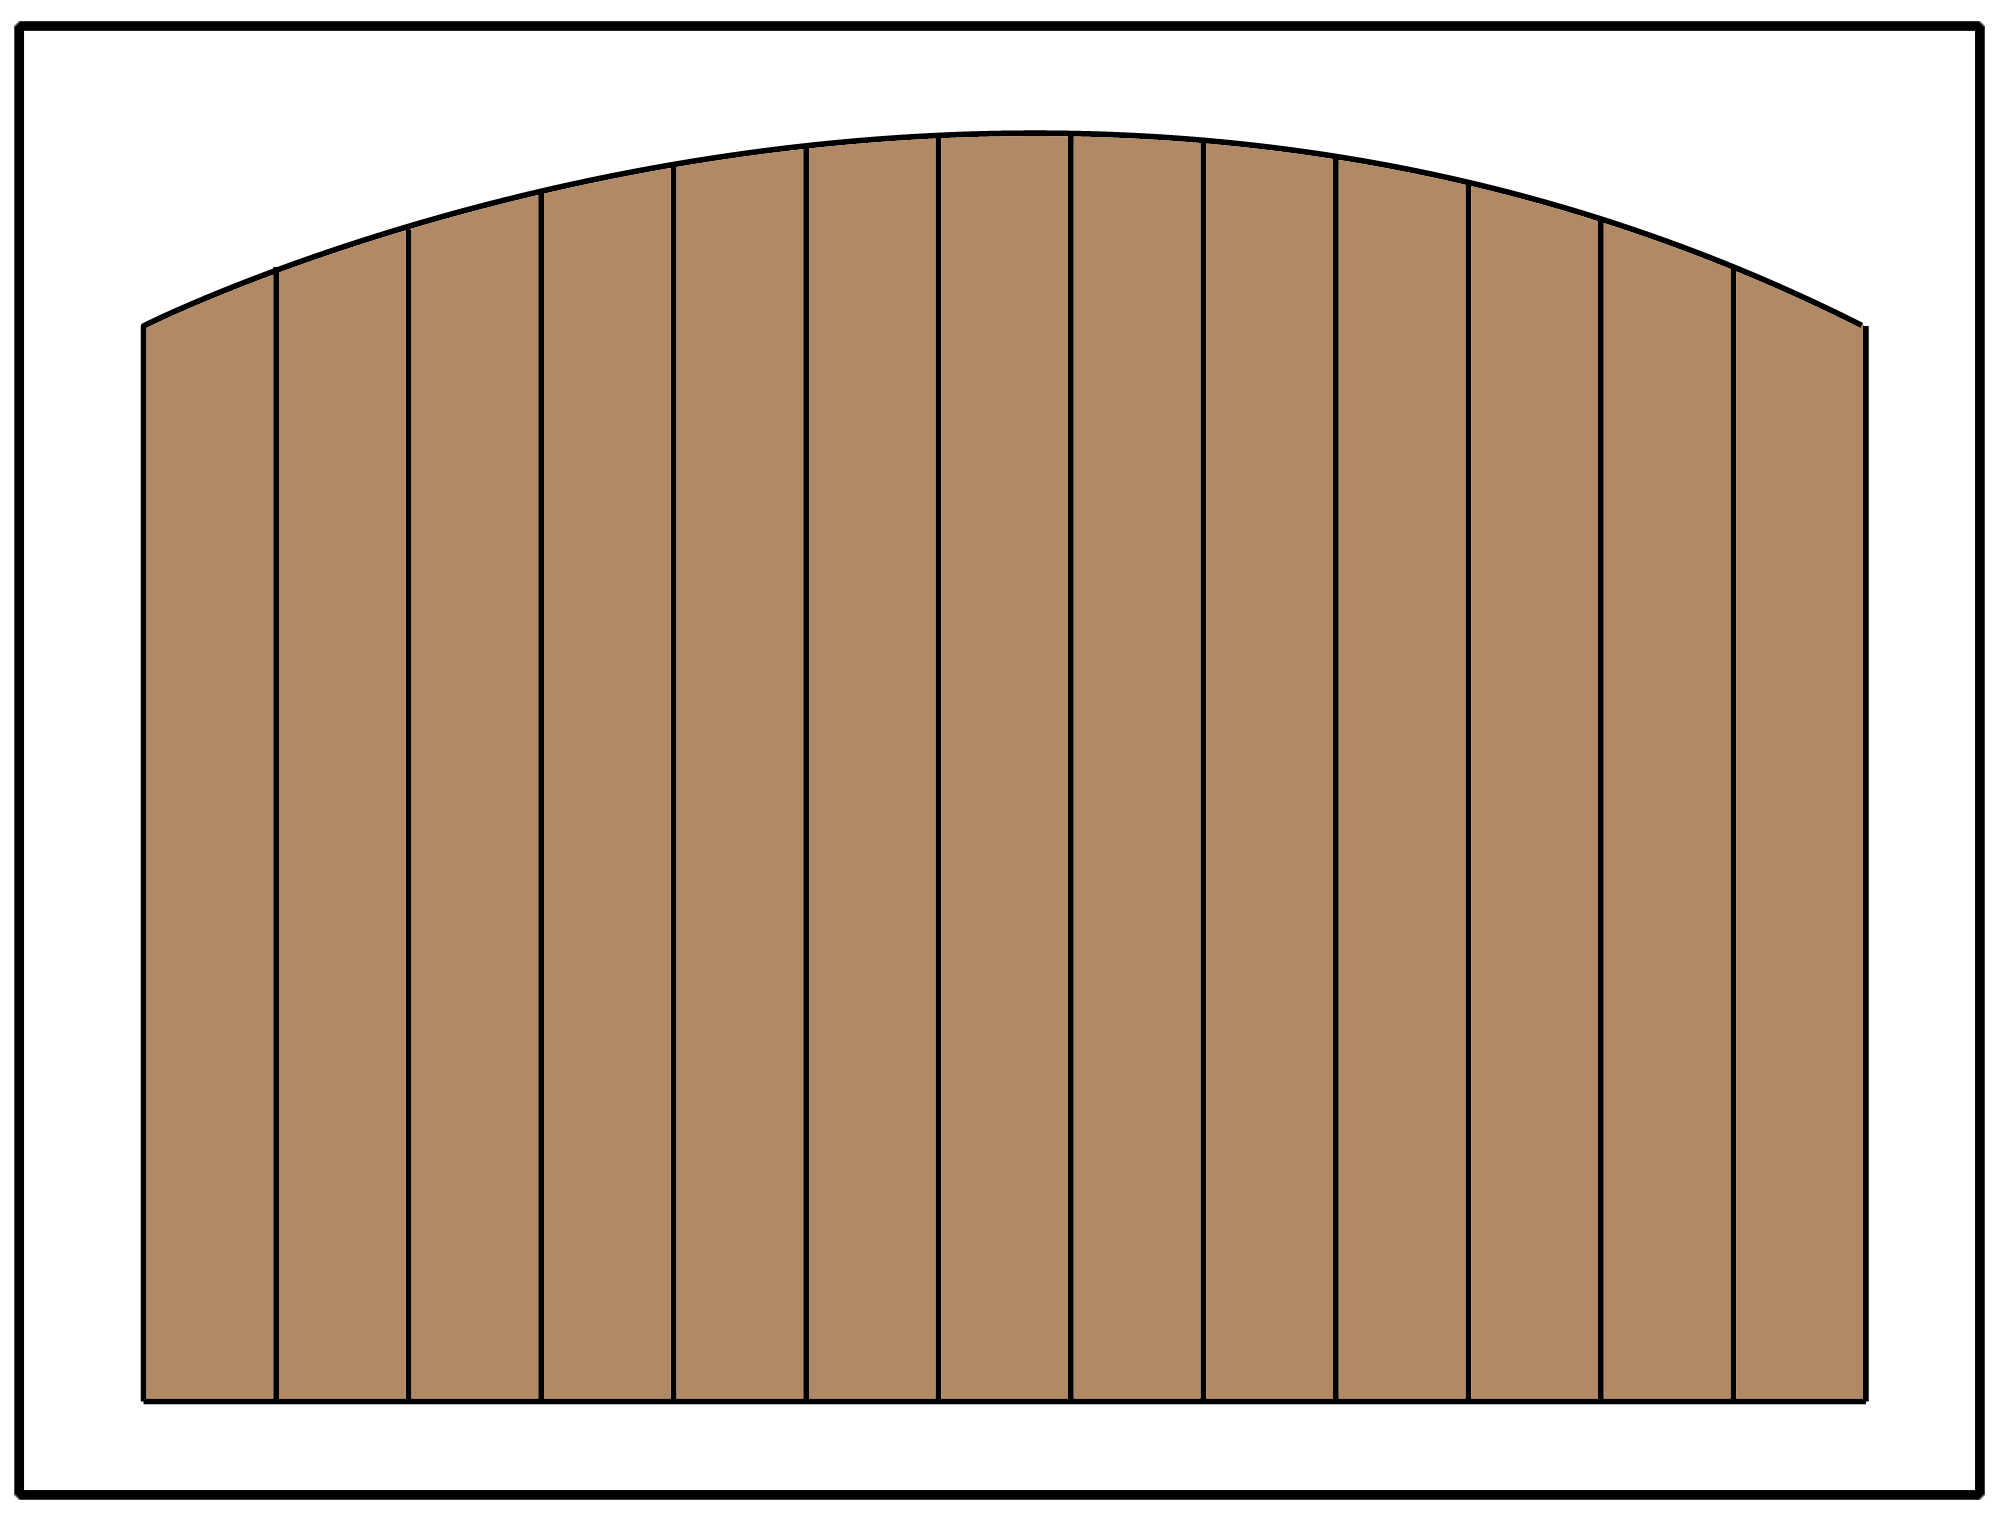 Privacy fence with an arched curve in the panel